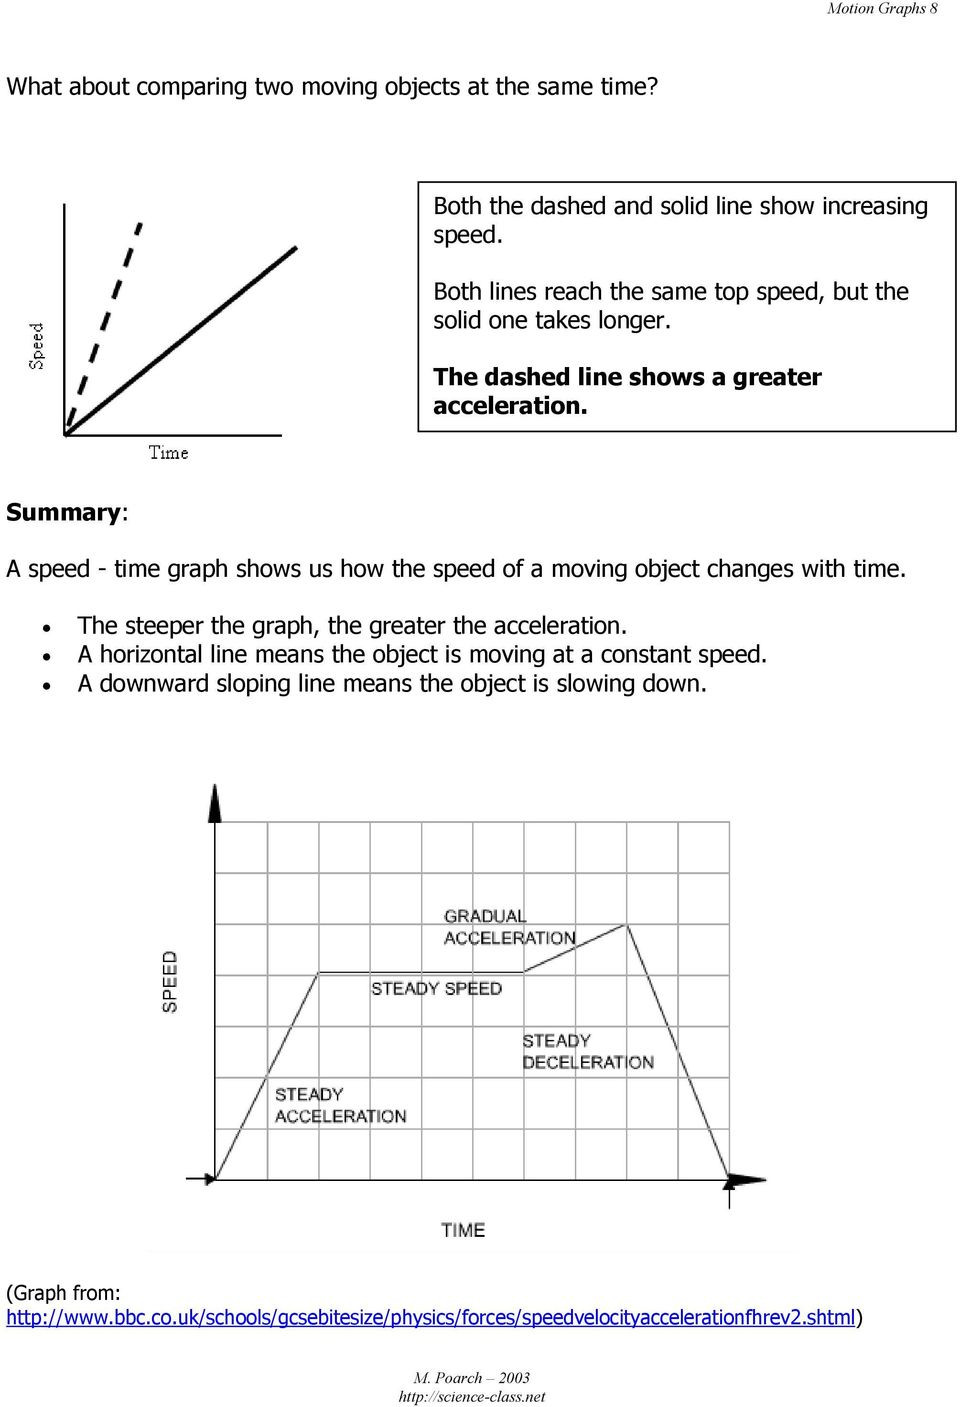 Motion Graphs Worksheet Answer Key Motion Graphs Plotting Distance Against Time Can Tell You A